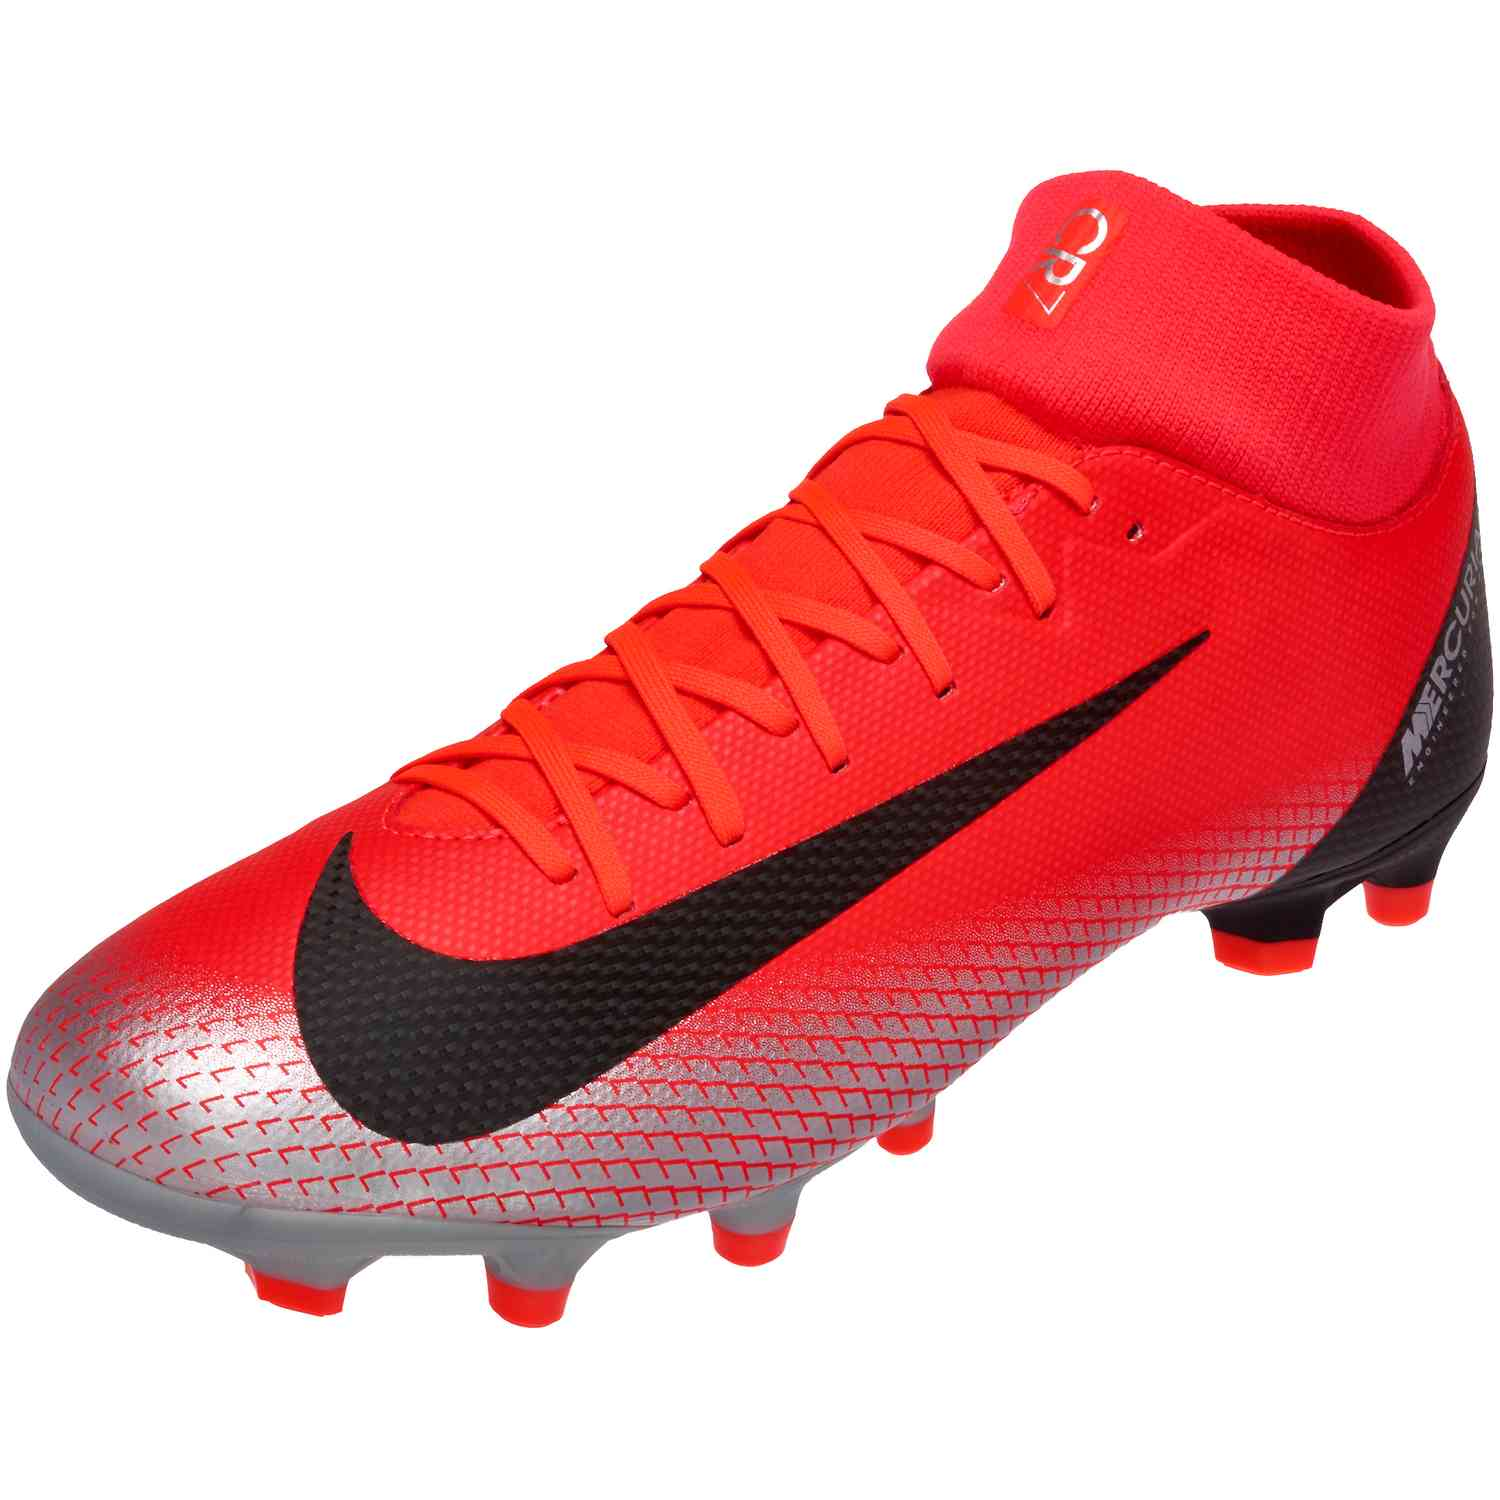 buy popular a893b c5bfe Nike CR7 Mercurial Superfly 6 Academy FG - Chapter 7 - SoccerPro